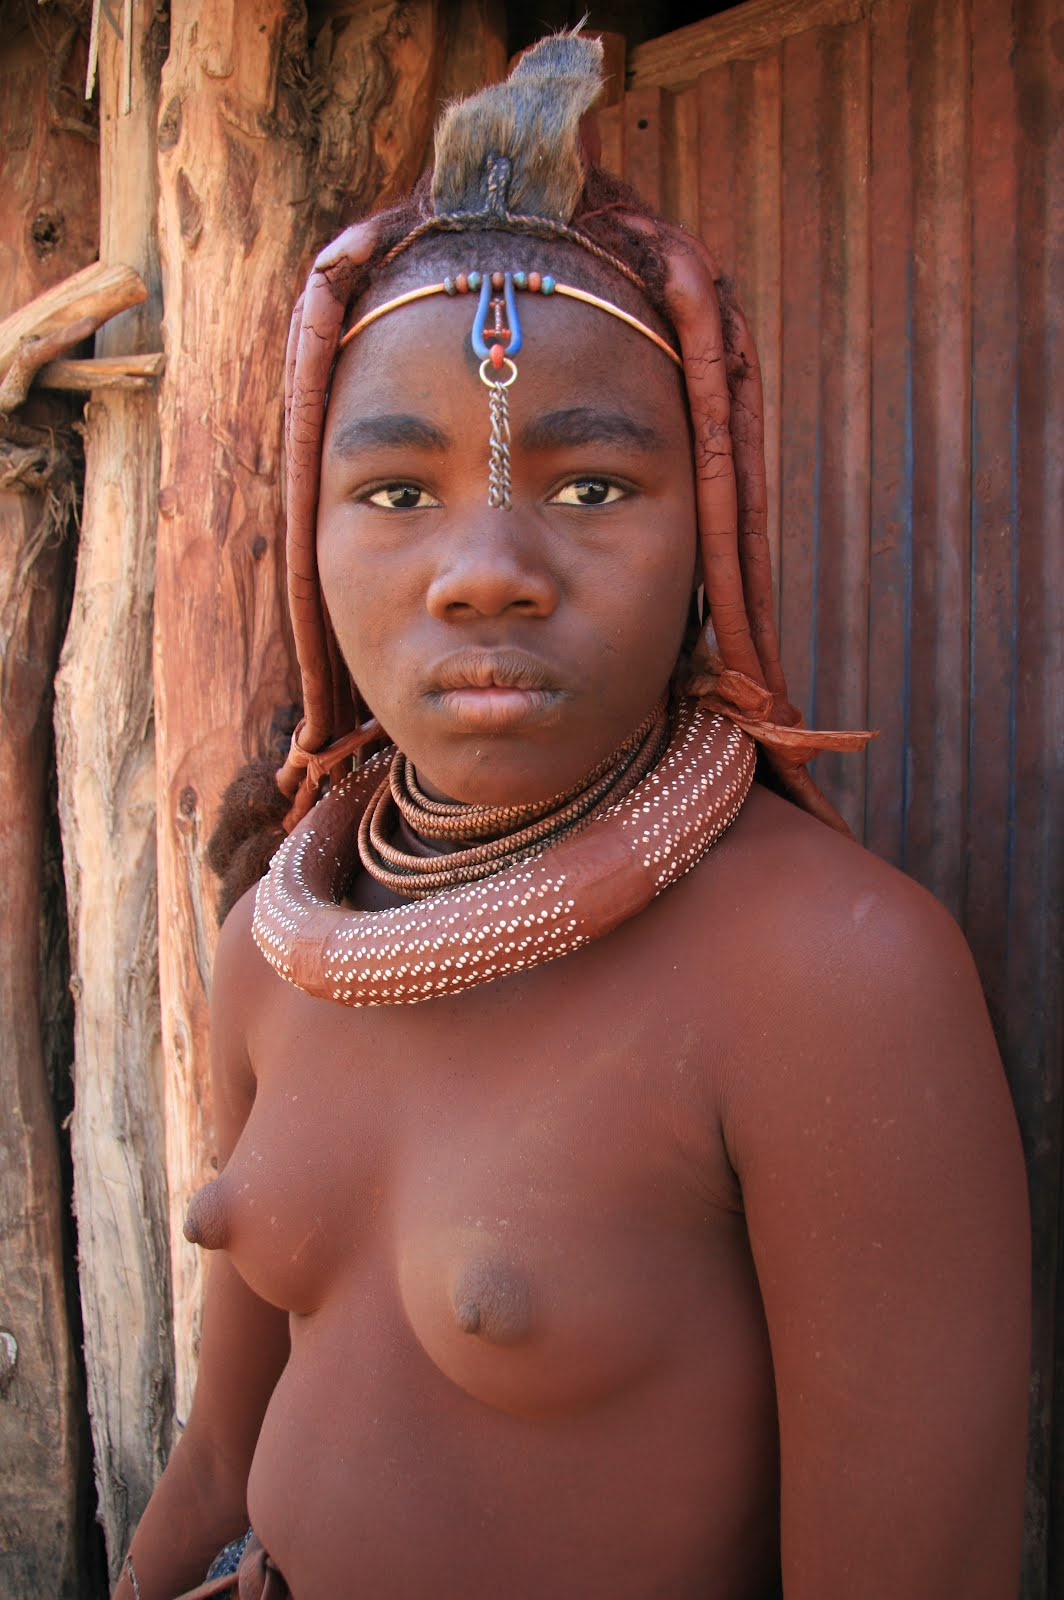 pictures-of-full-nude-tribal-girls